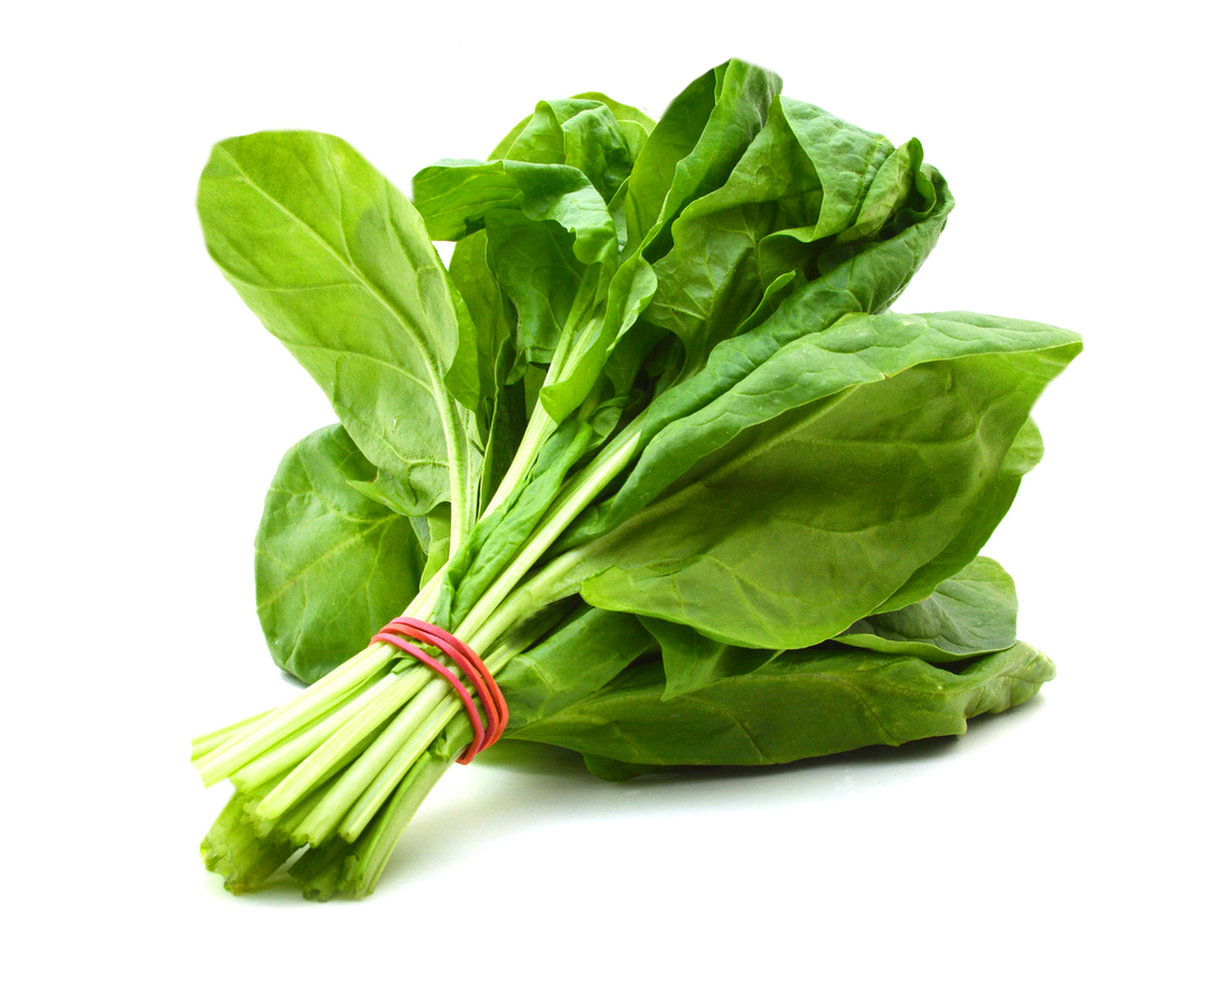 Spinach.jpeg